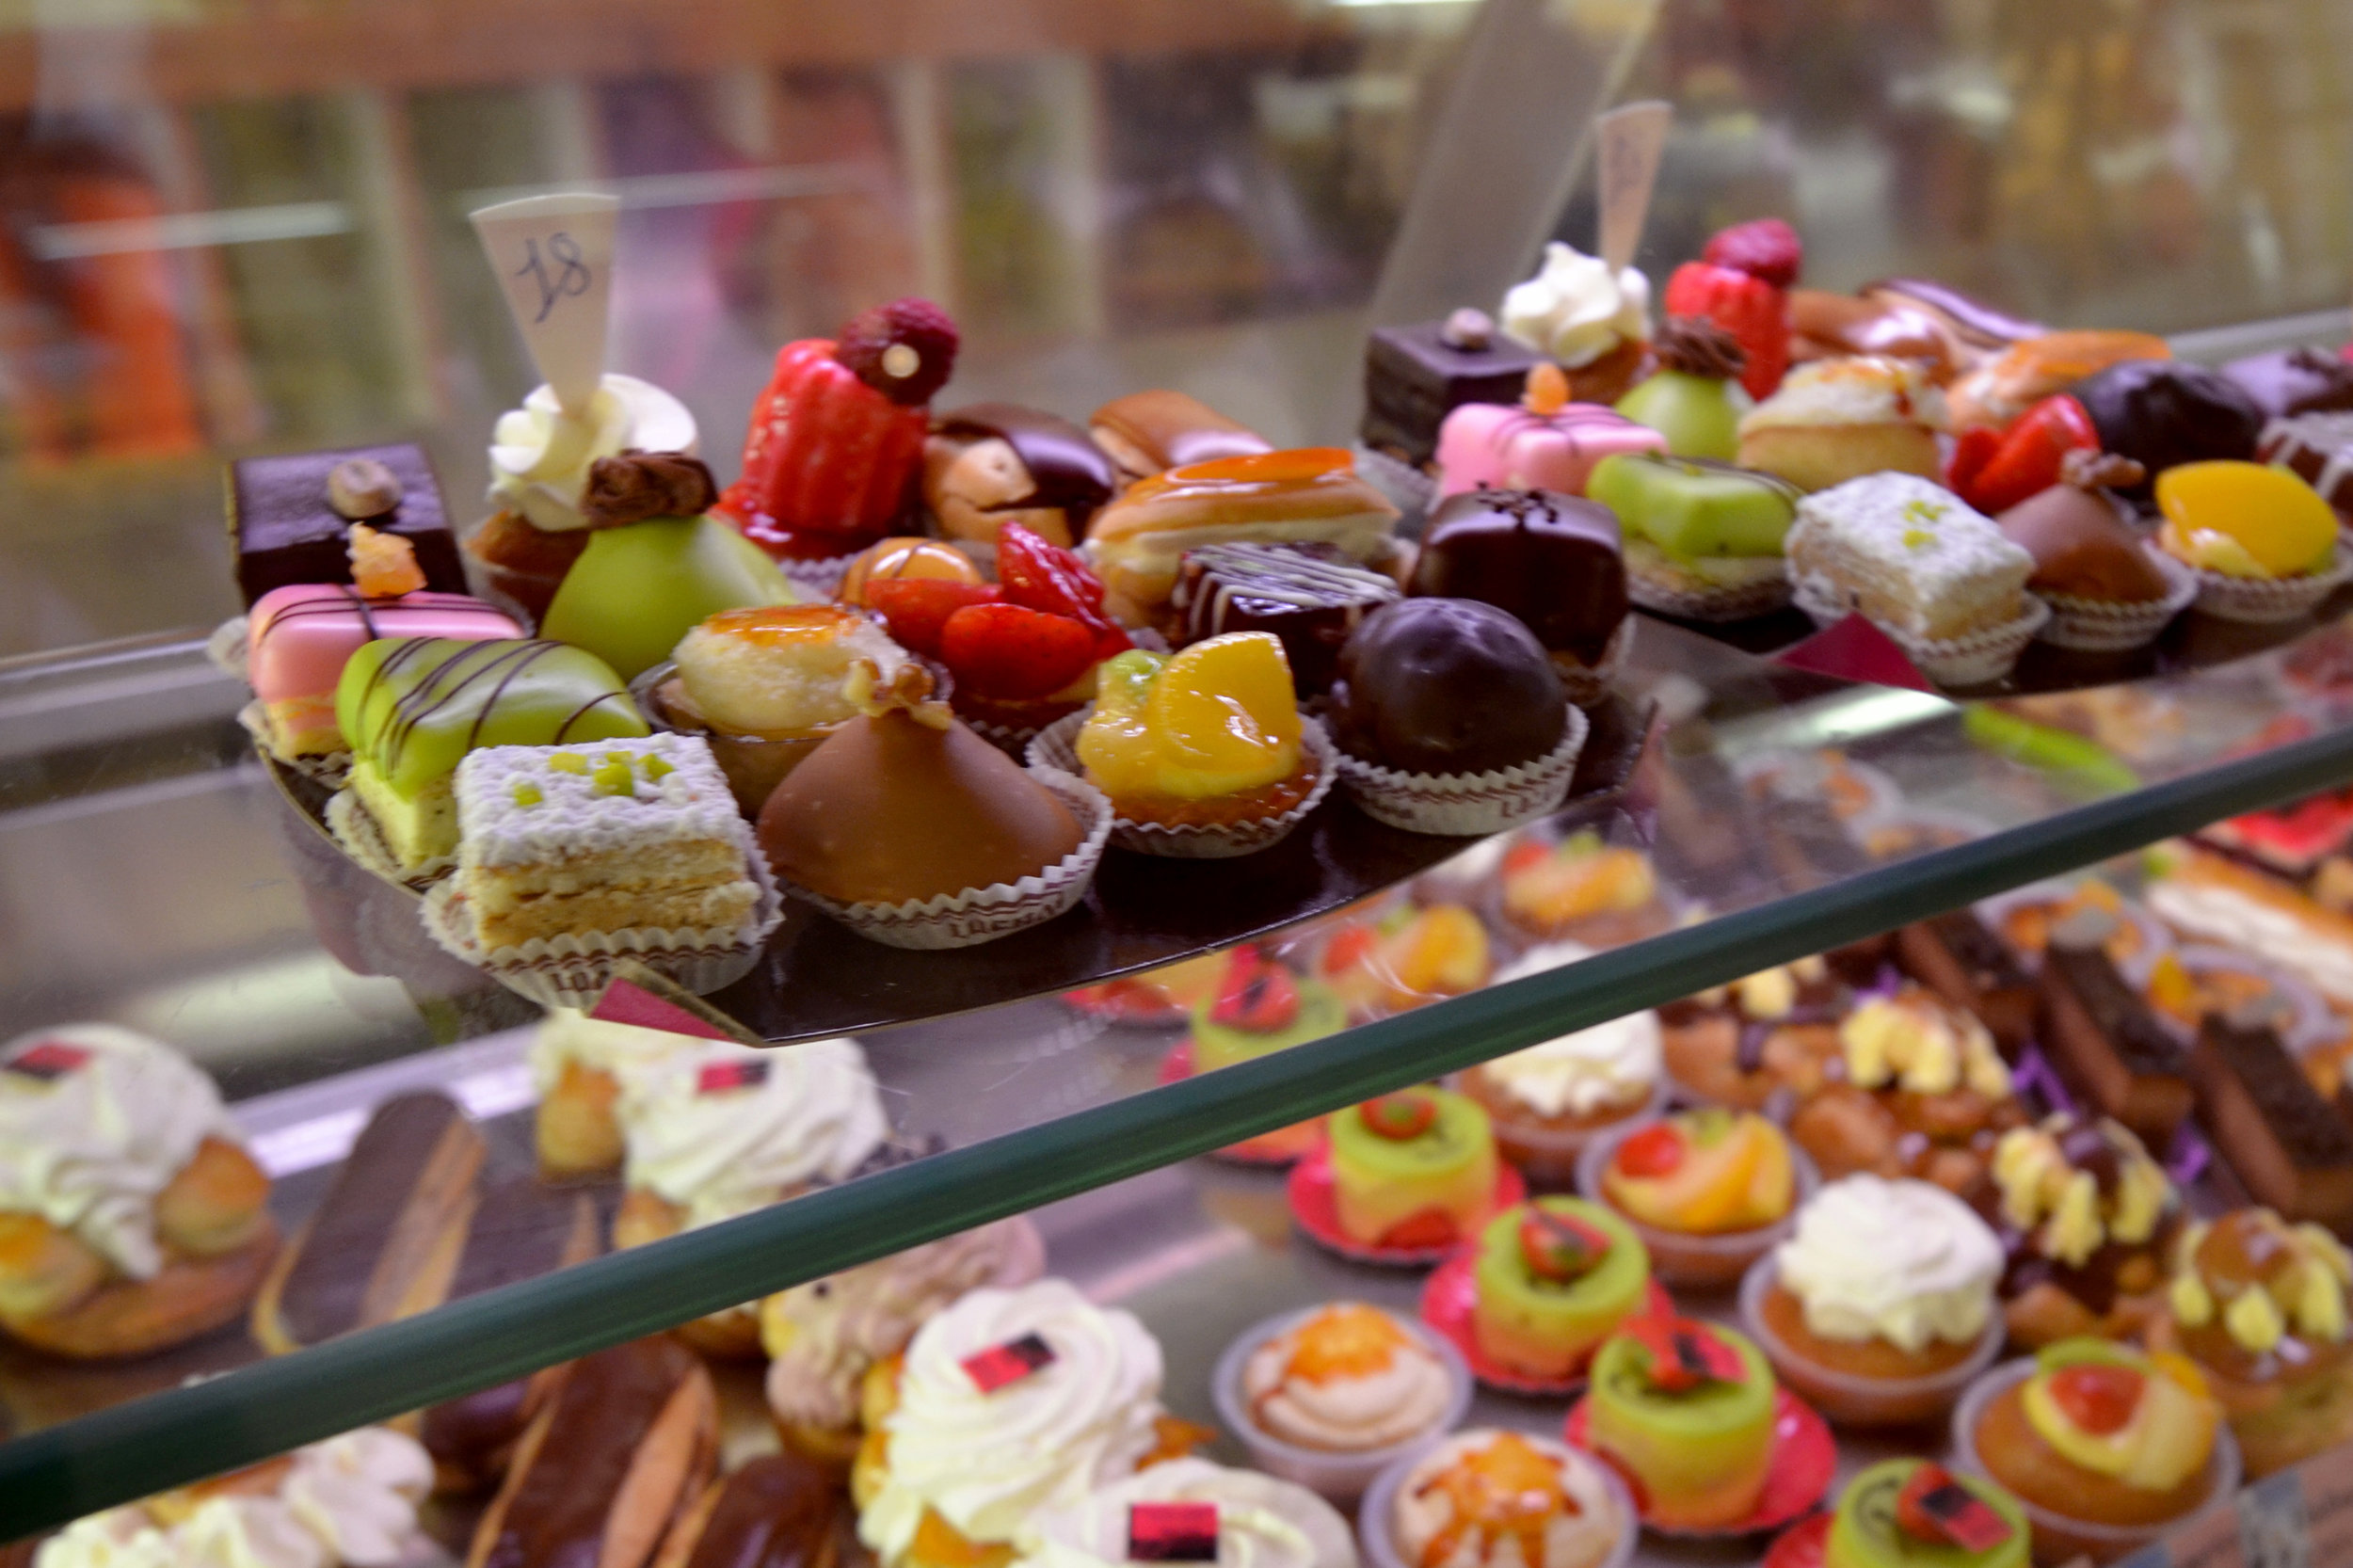 amazing cakes, pastries and sweets